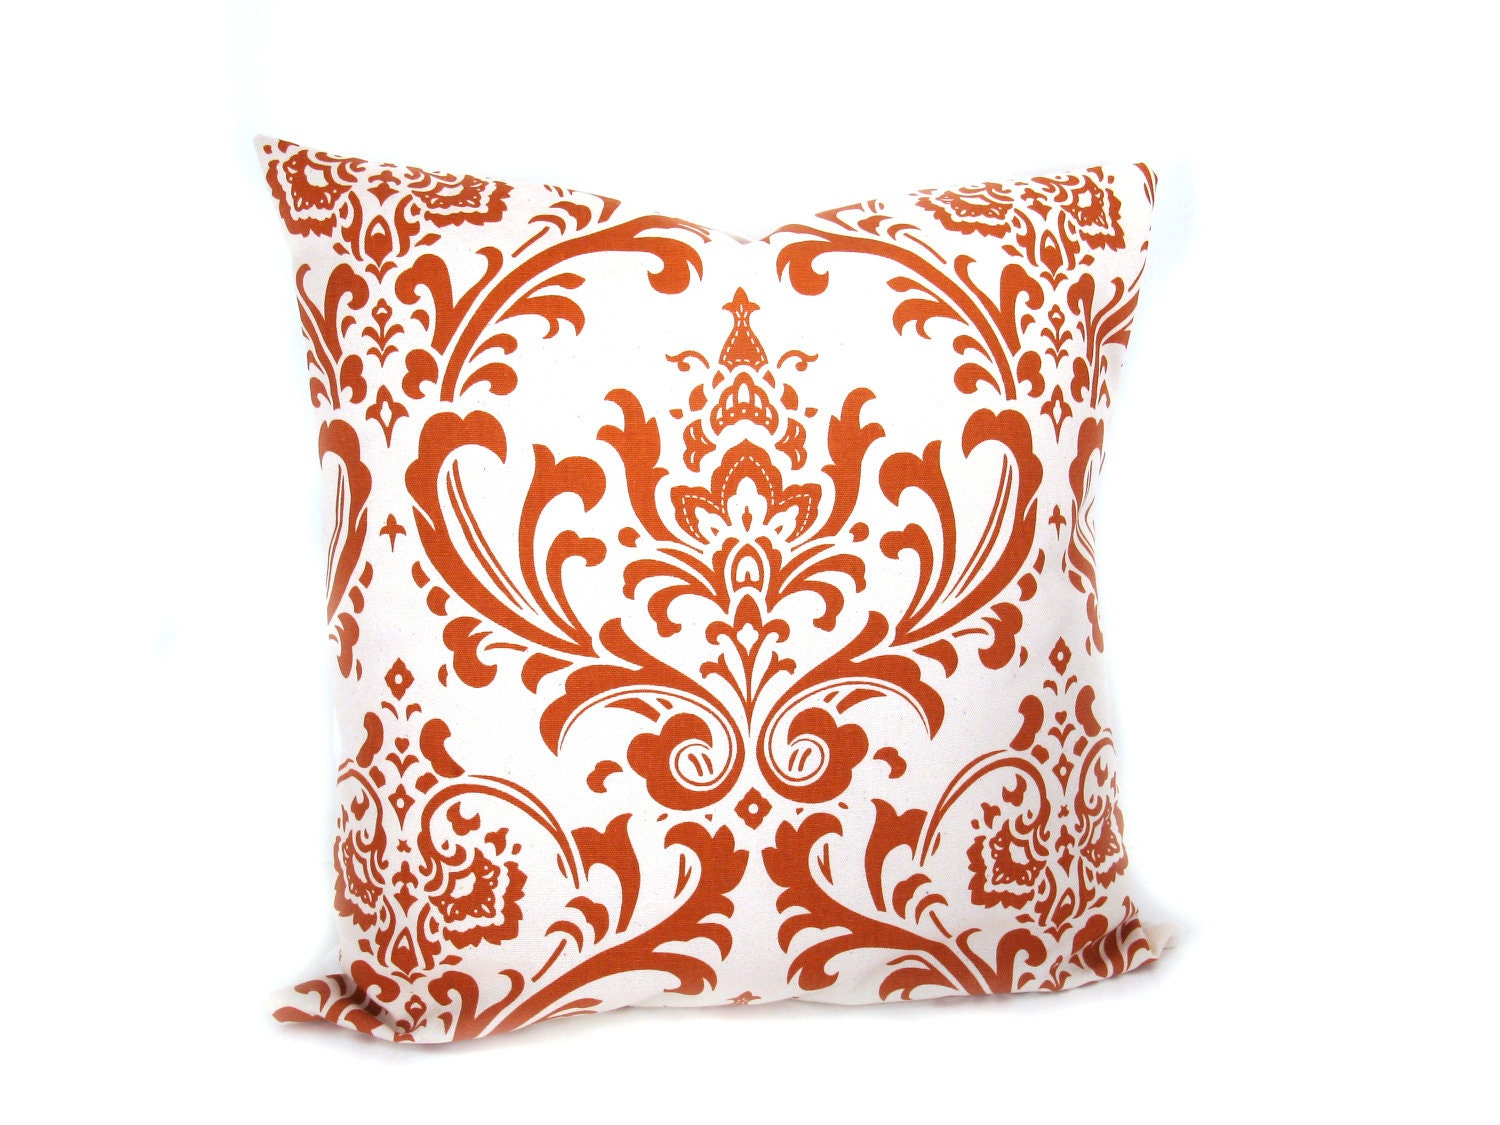 Orange Decorative Pillows Couch : Orange Pillow Cover Decorative Throw Pillows Burnt by EastAndNest